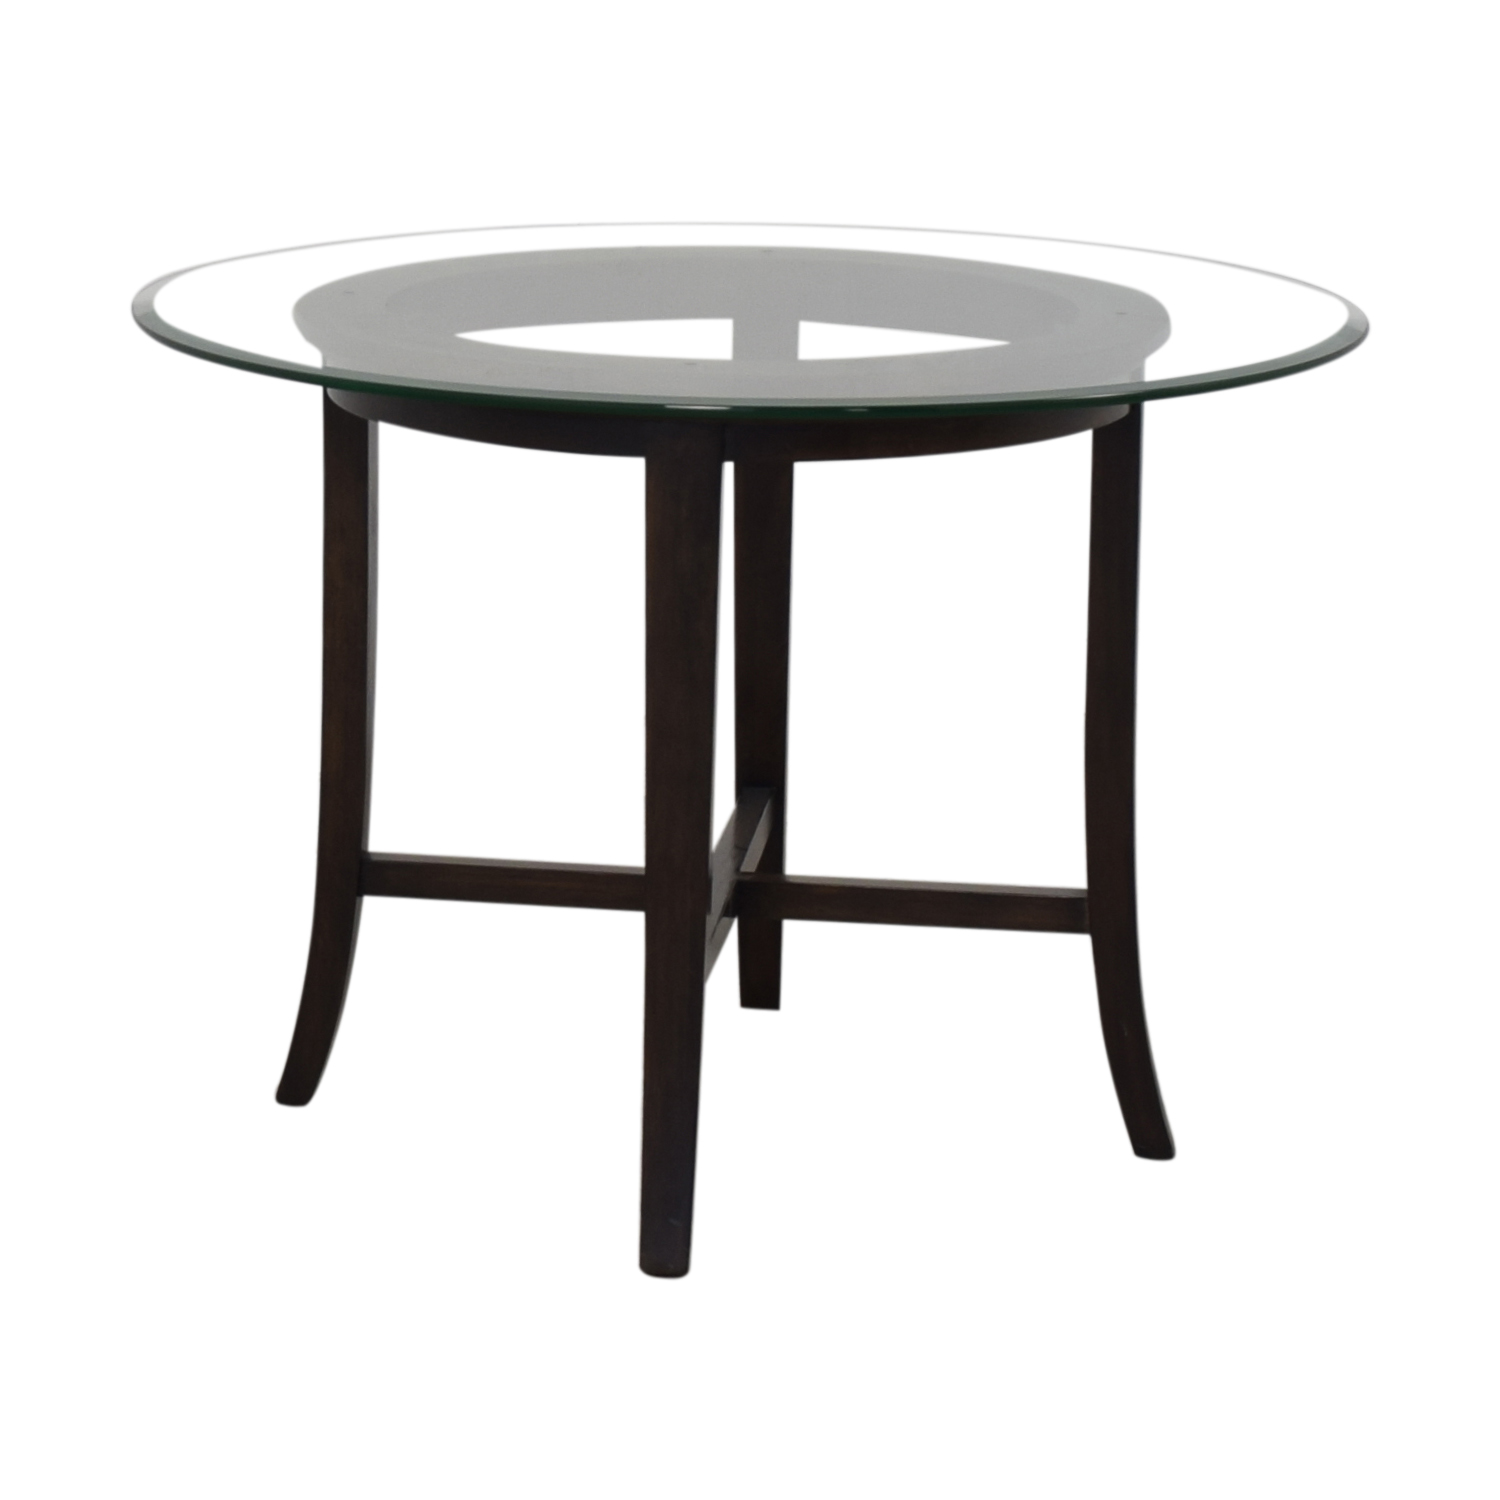 Crate & Barrel Crate & Barrel Halo Glass and Wood Dining Table Tables